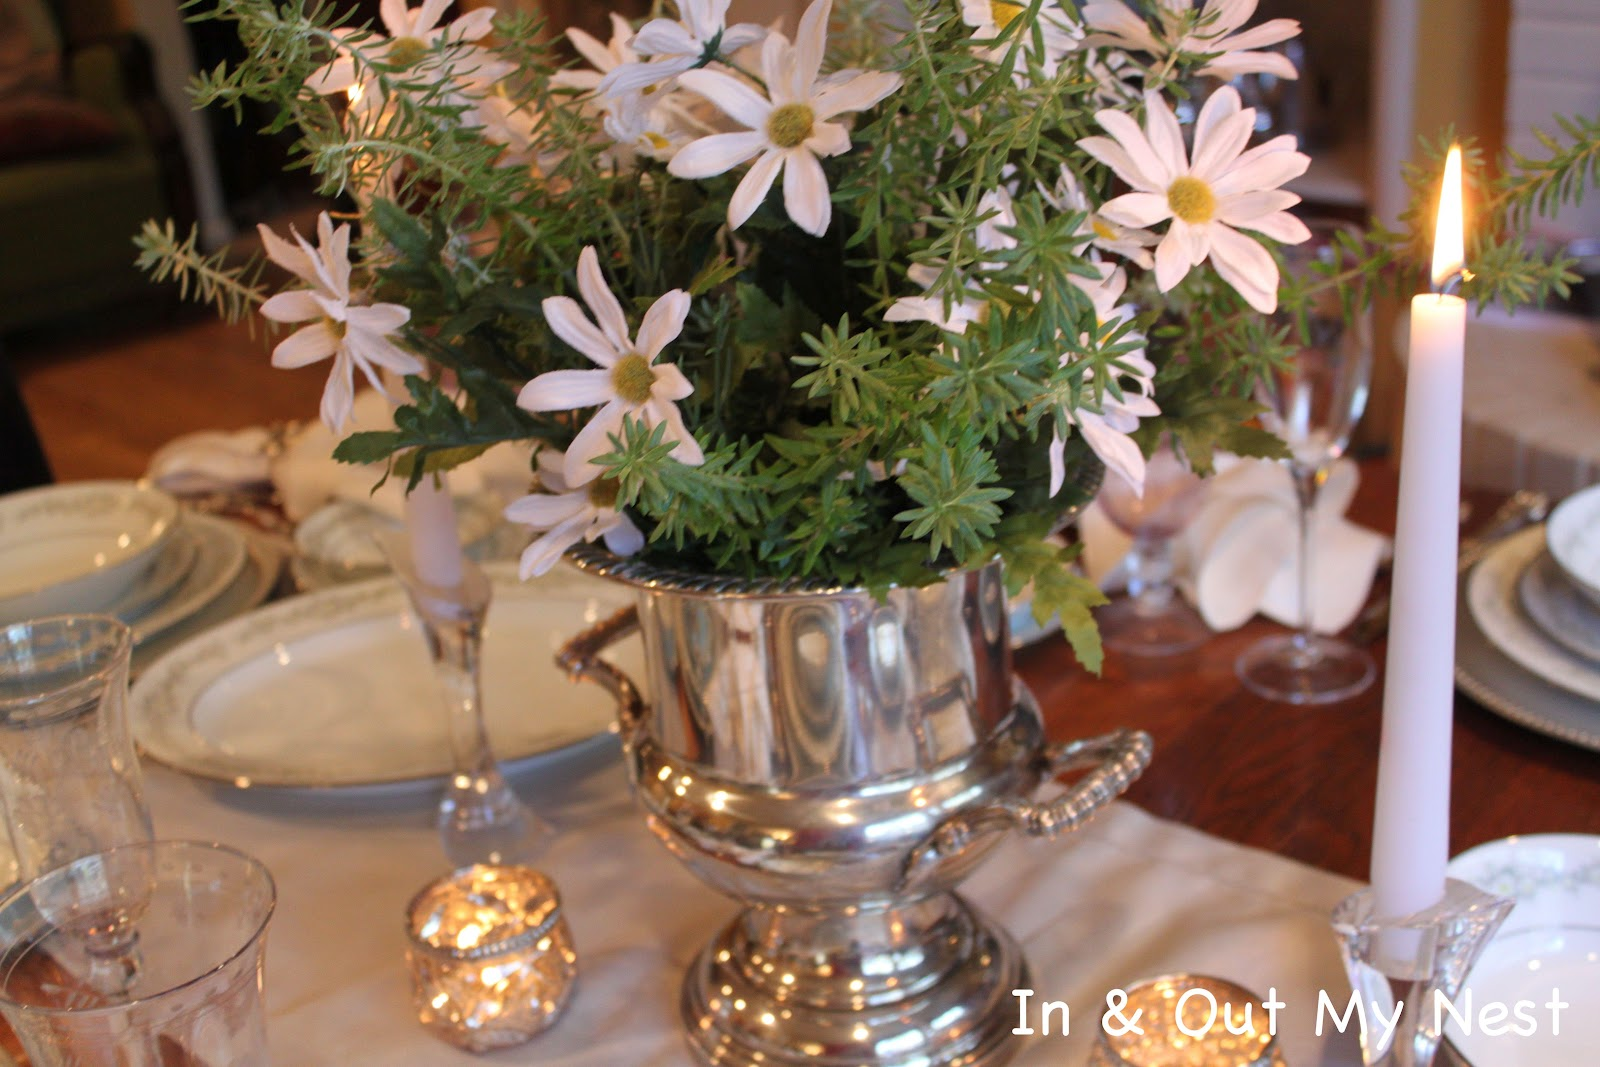 Daisy maisy flowers choice image flower wallpaper hd in and out my nest daisy maisy sister sue love these champagne flutes from amazon they izmirmasajfo